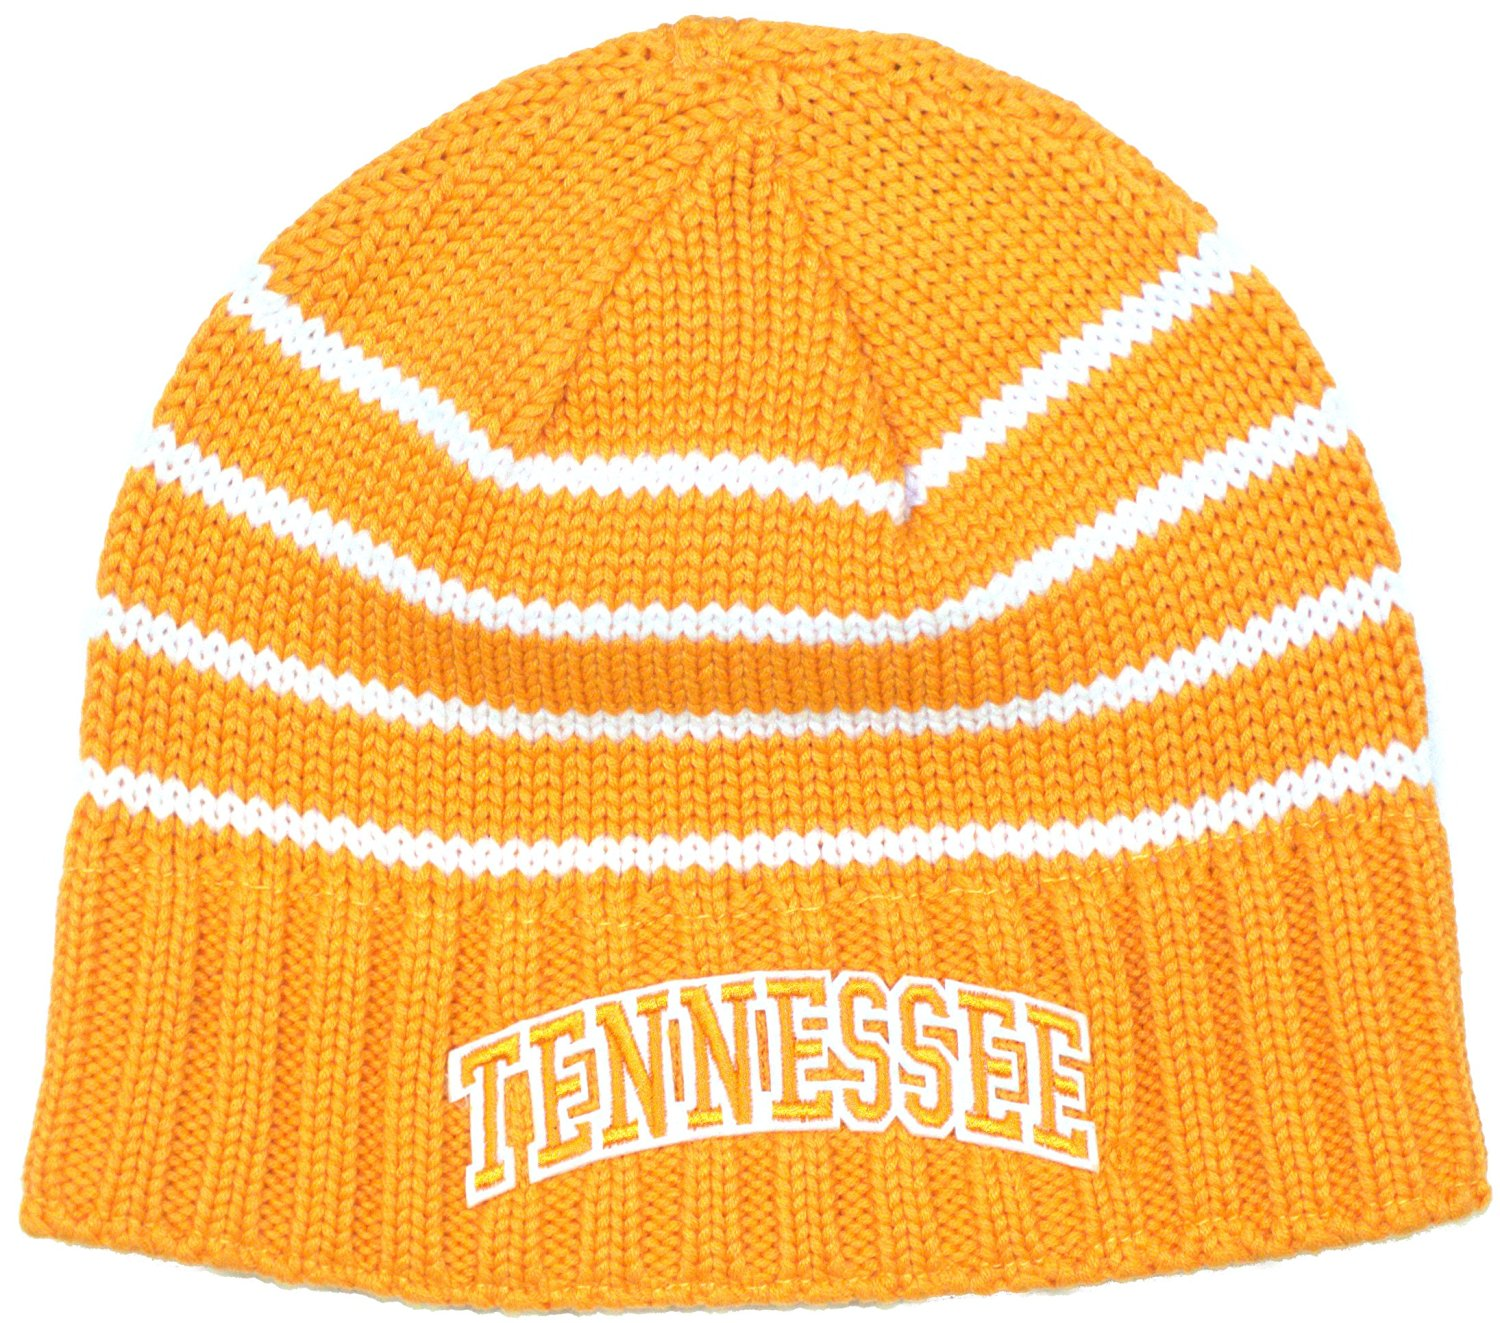 Bama - NCAA Officially Licensed Tennessee Volunteers Embroidered Team  Striped Fleece Lined Beanie Hat Cap Lid Toque - Walmart.com 97aeb091387